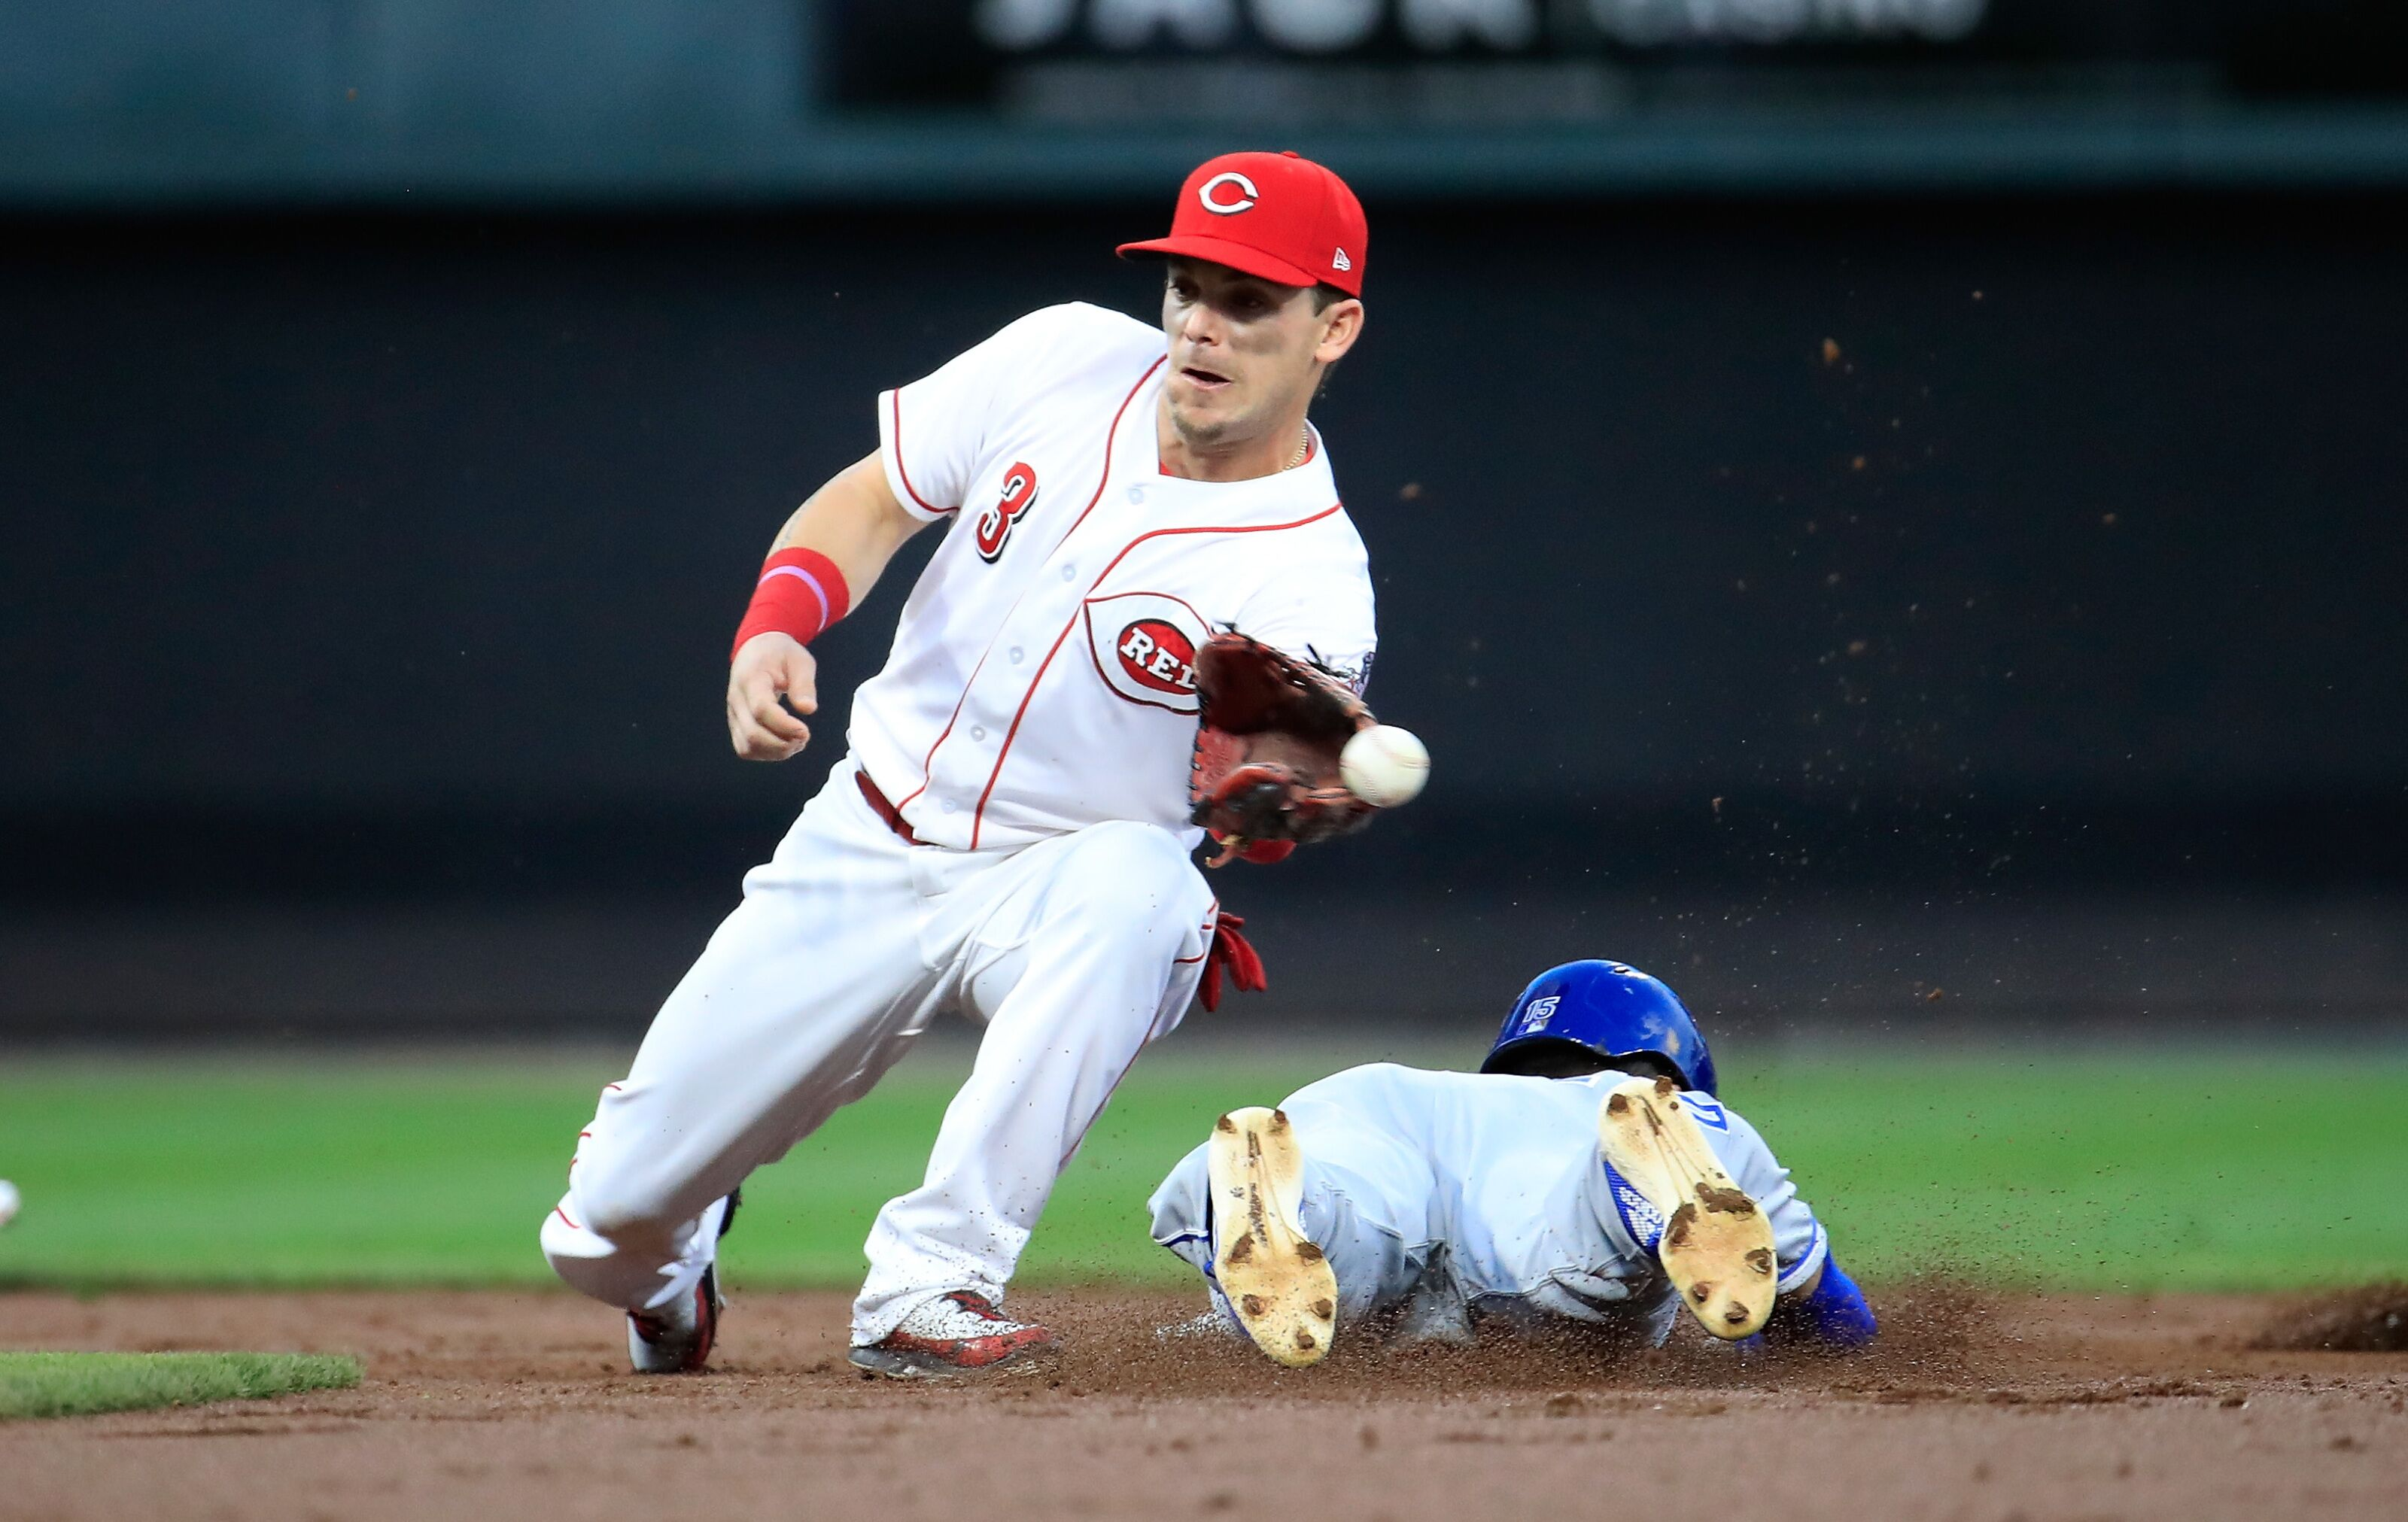 Why haven't the Cincinnati Reds extended Scooter Gennett?